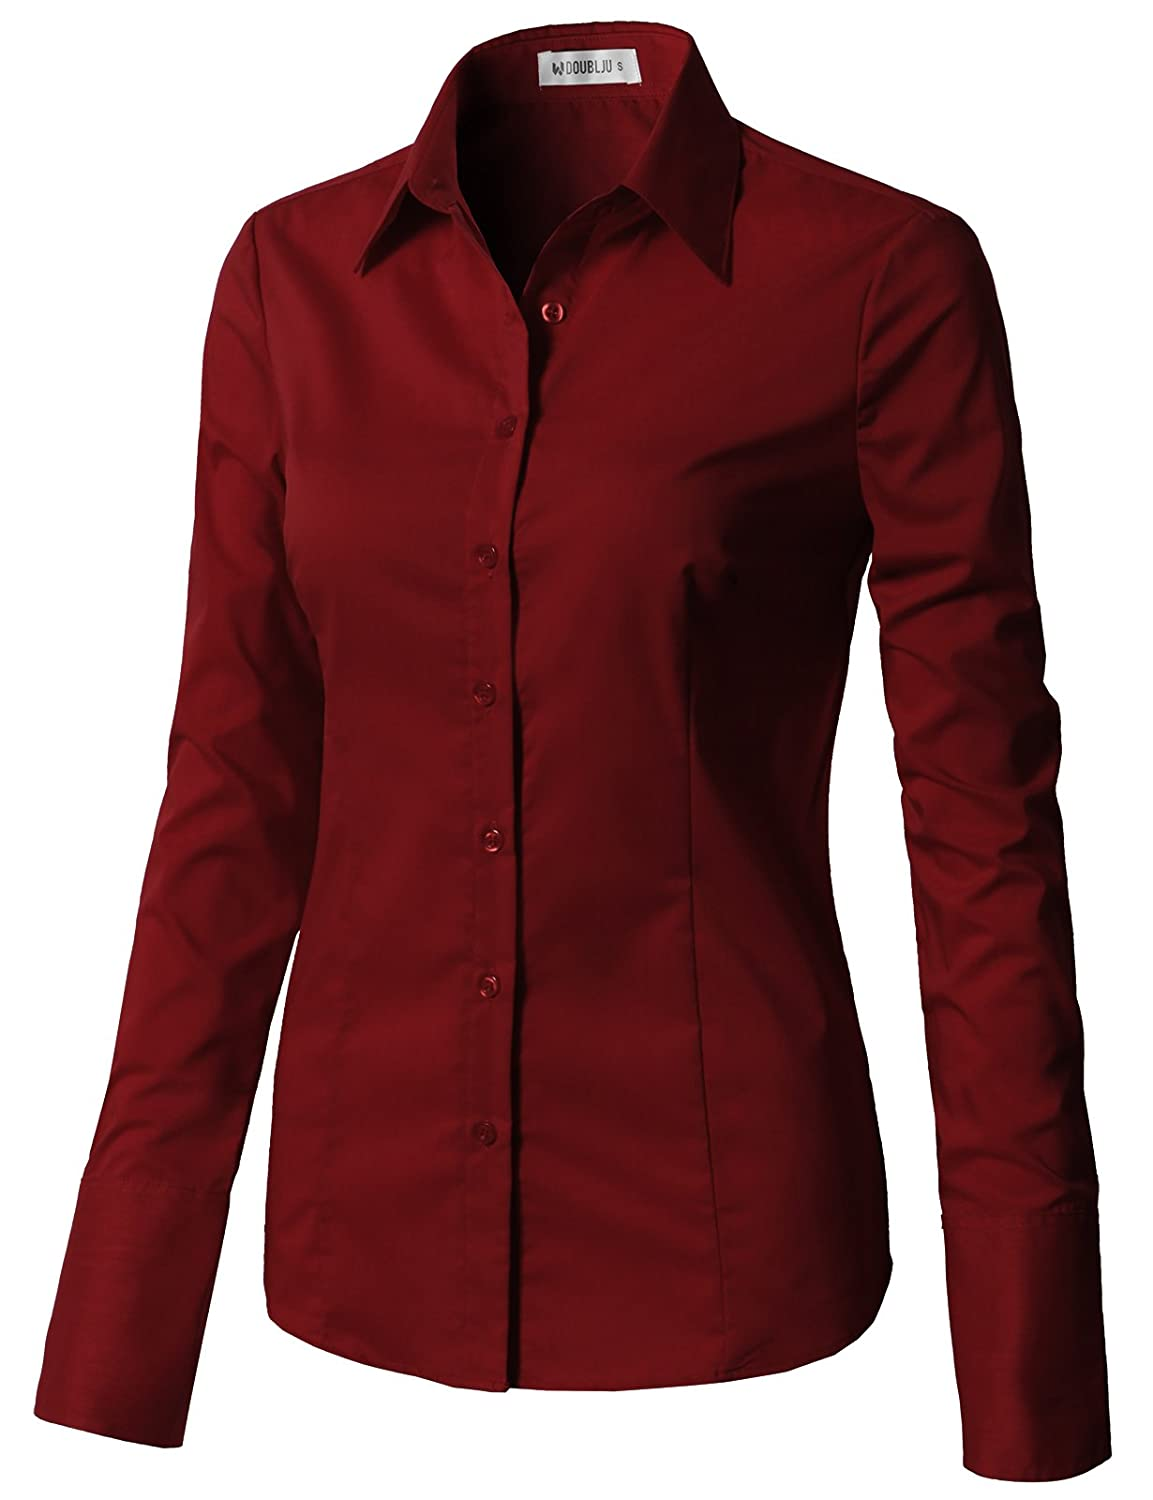 988e05dcb CLOVERY Women s Basic Long Sleeve Slim Fit Button Down Shirt at Amazon  Women s Clothing store